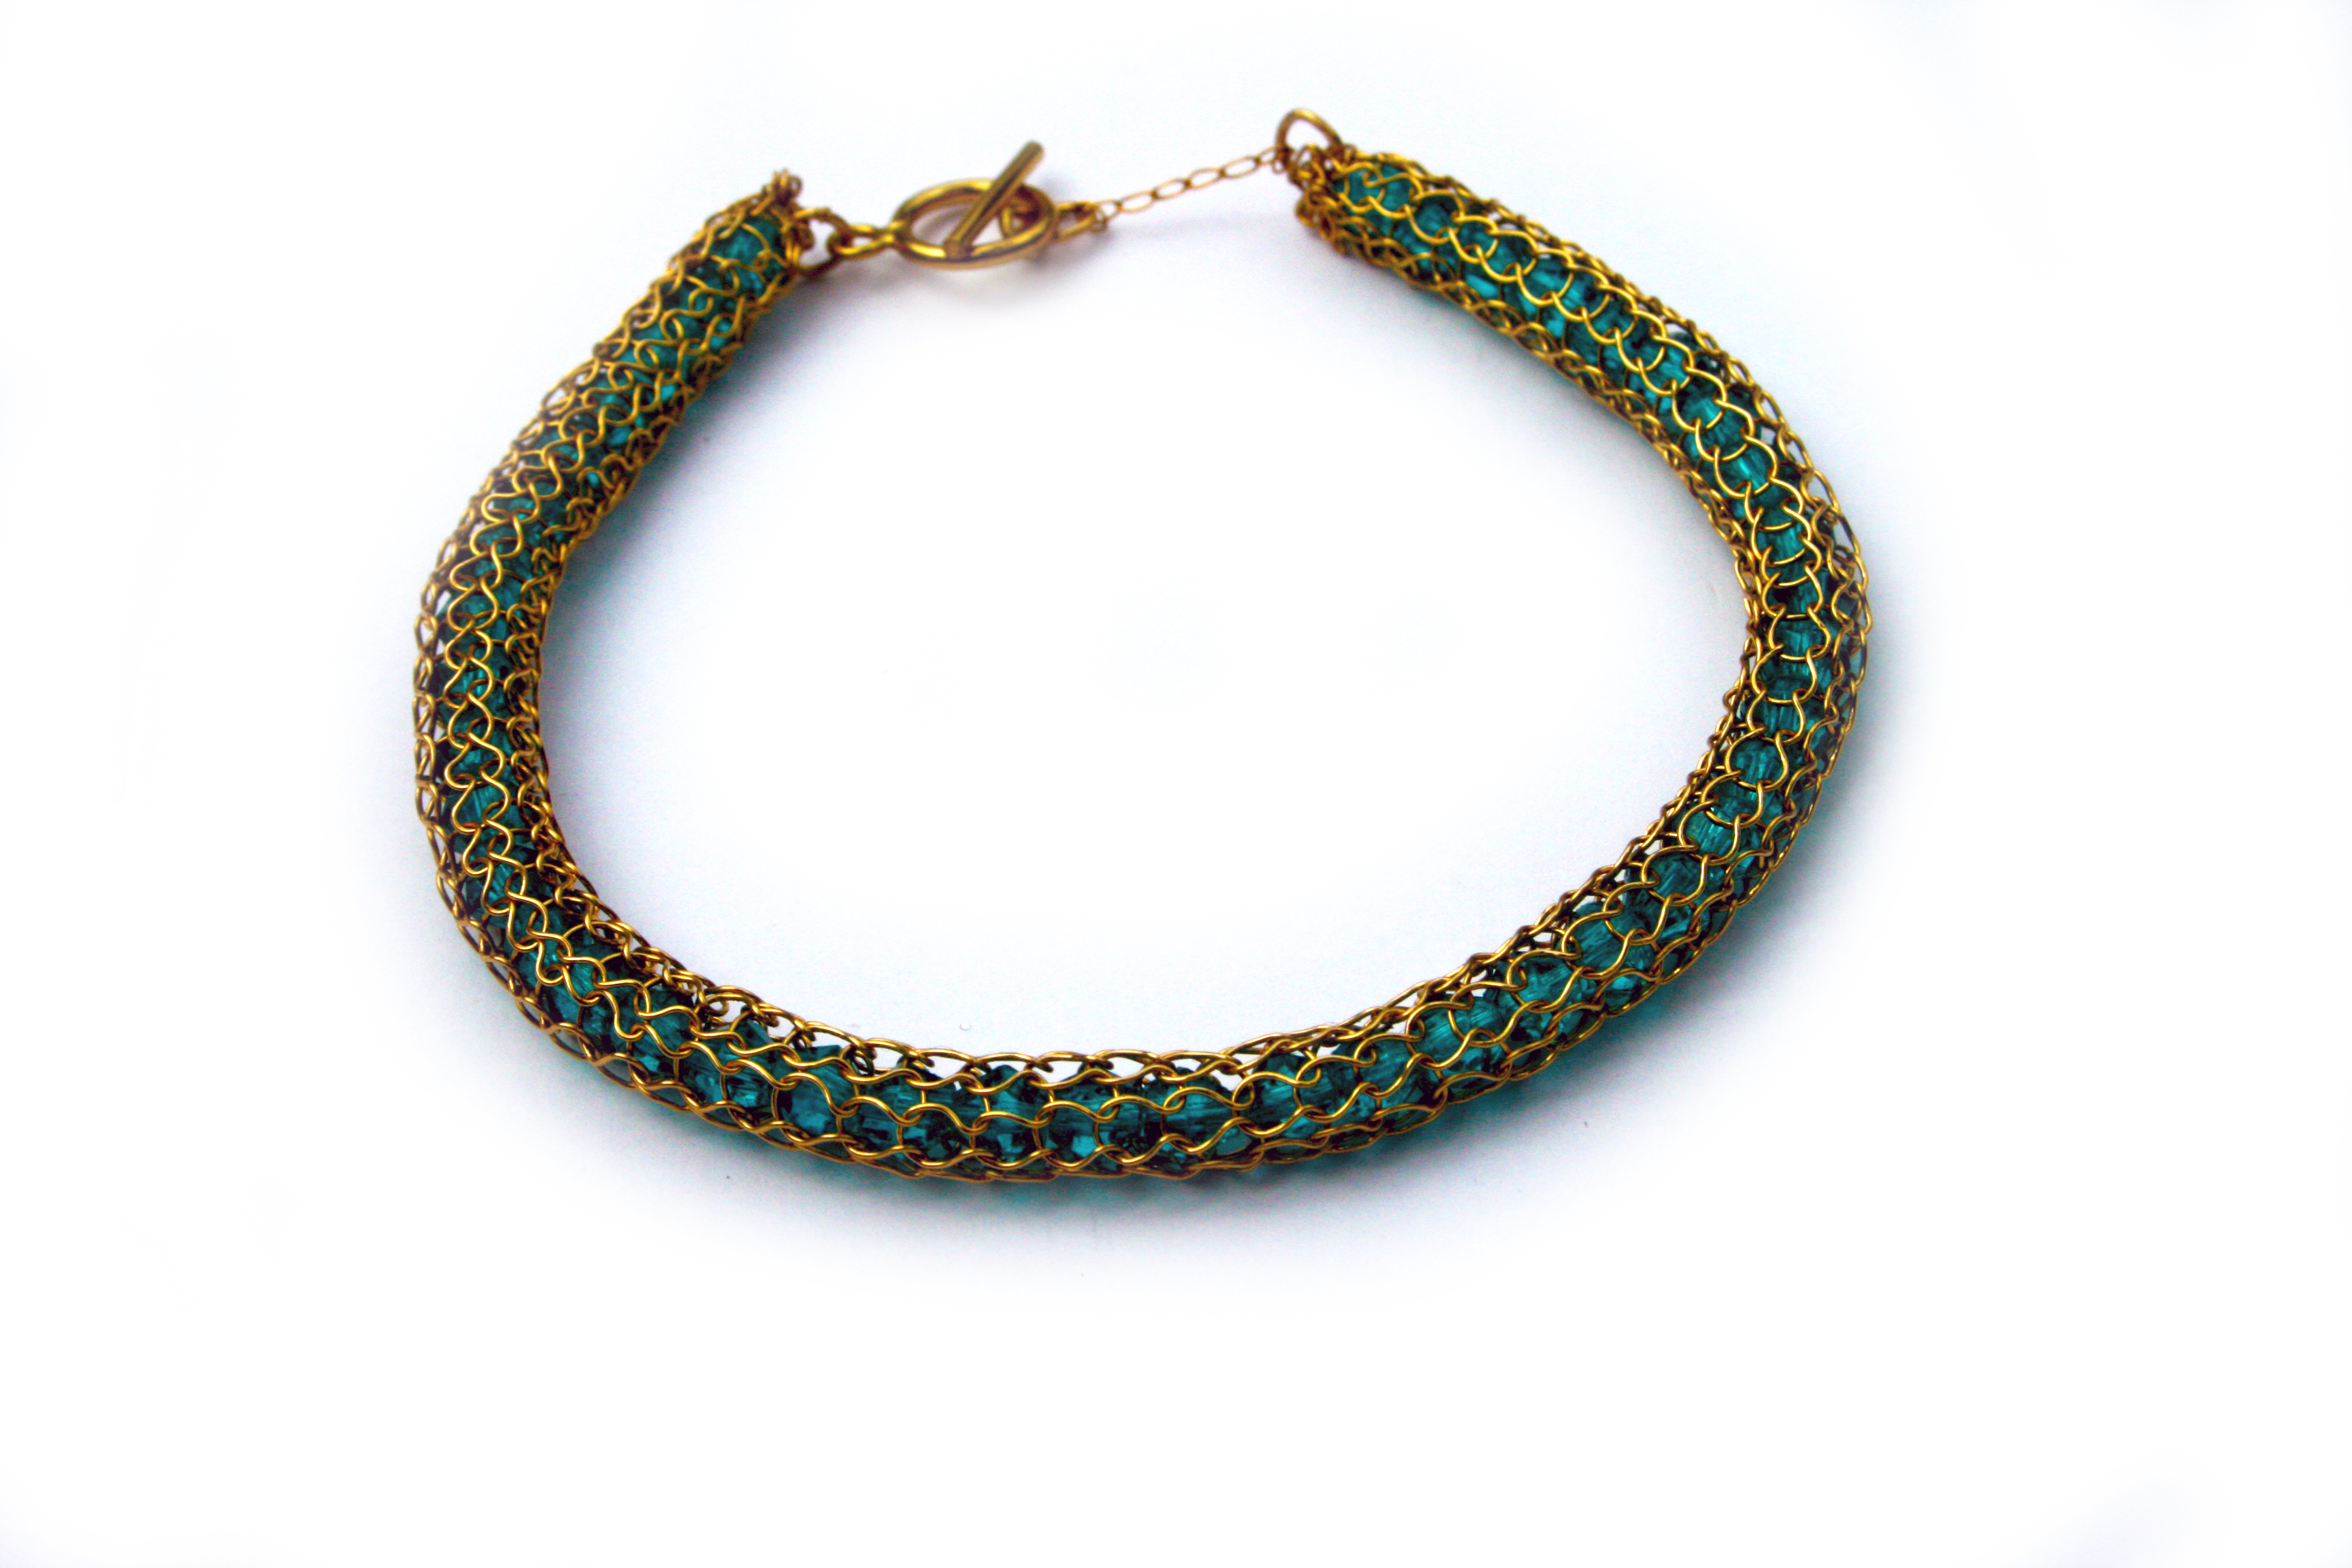 Gold Crochet Bracelet with Green Glass Beads   The Design House